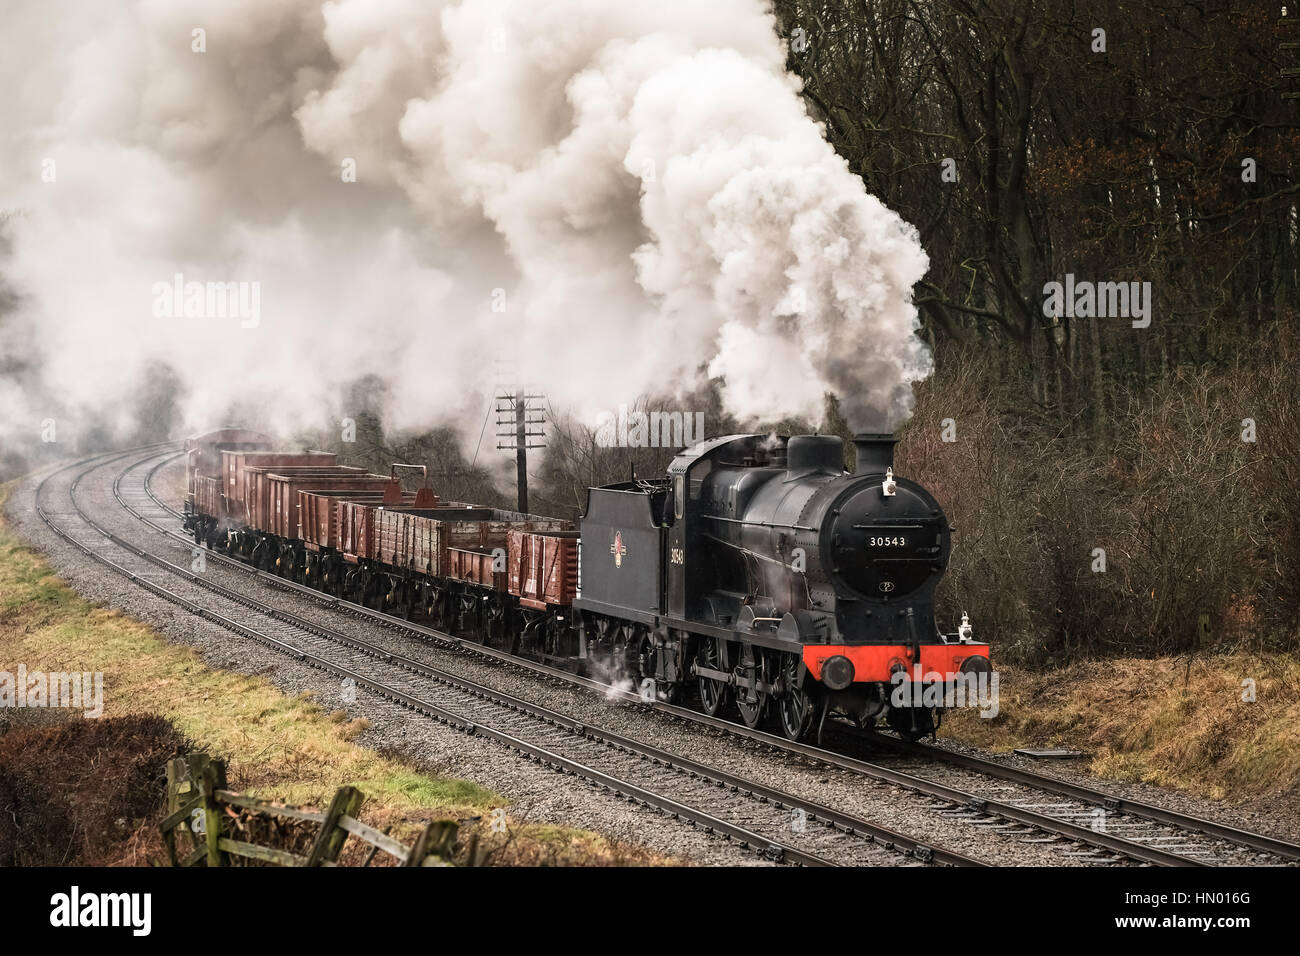 Southern Q Class 0-6-0 No. 30543 approaching Kinchley Lane and Swithland Viaduct on the Great Central Railway, February - Stock Image